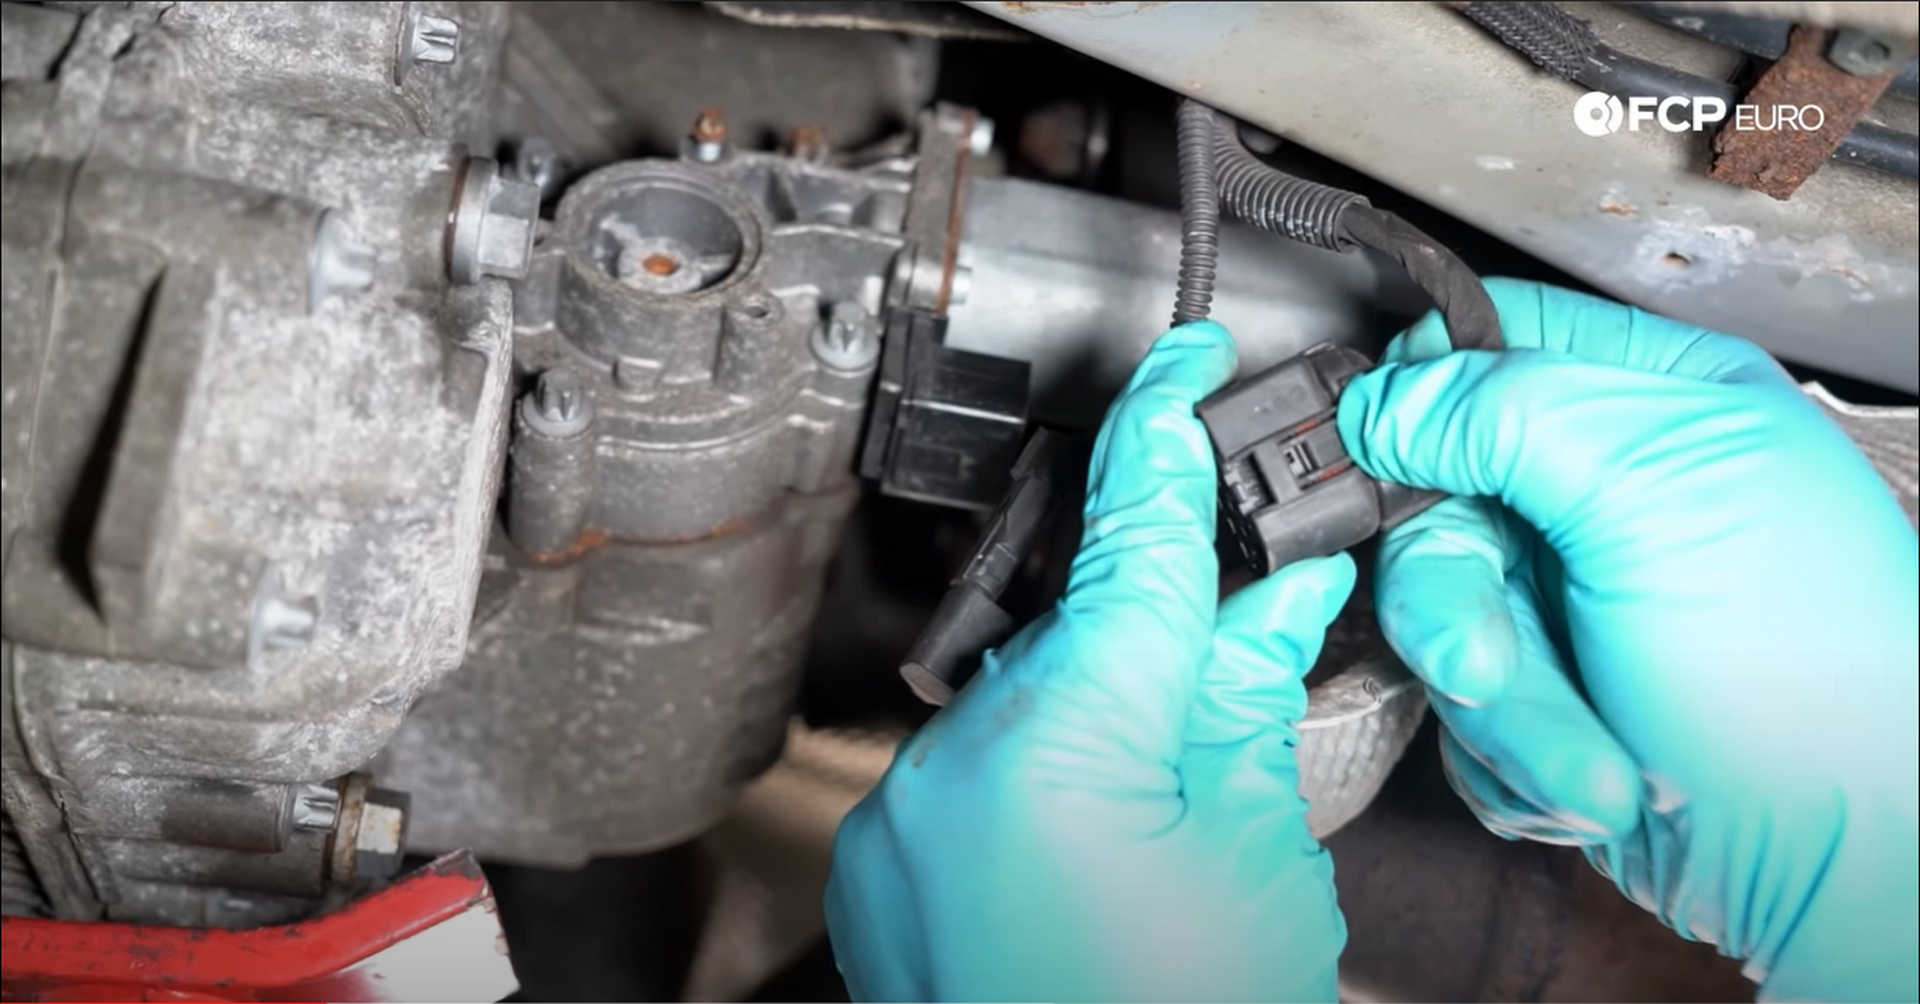 DIY BMW X3 Transfer Case Actuator unplugging the transfer case electrical connection